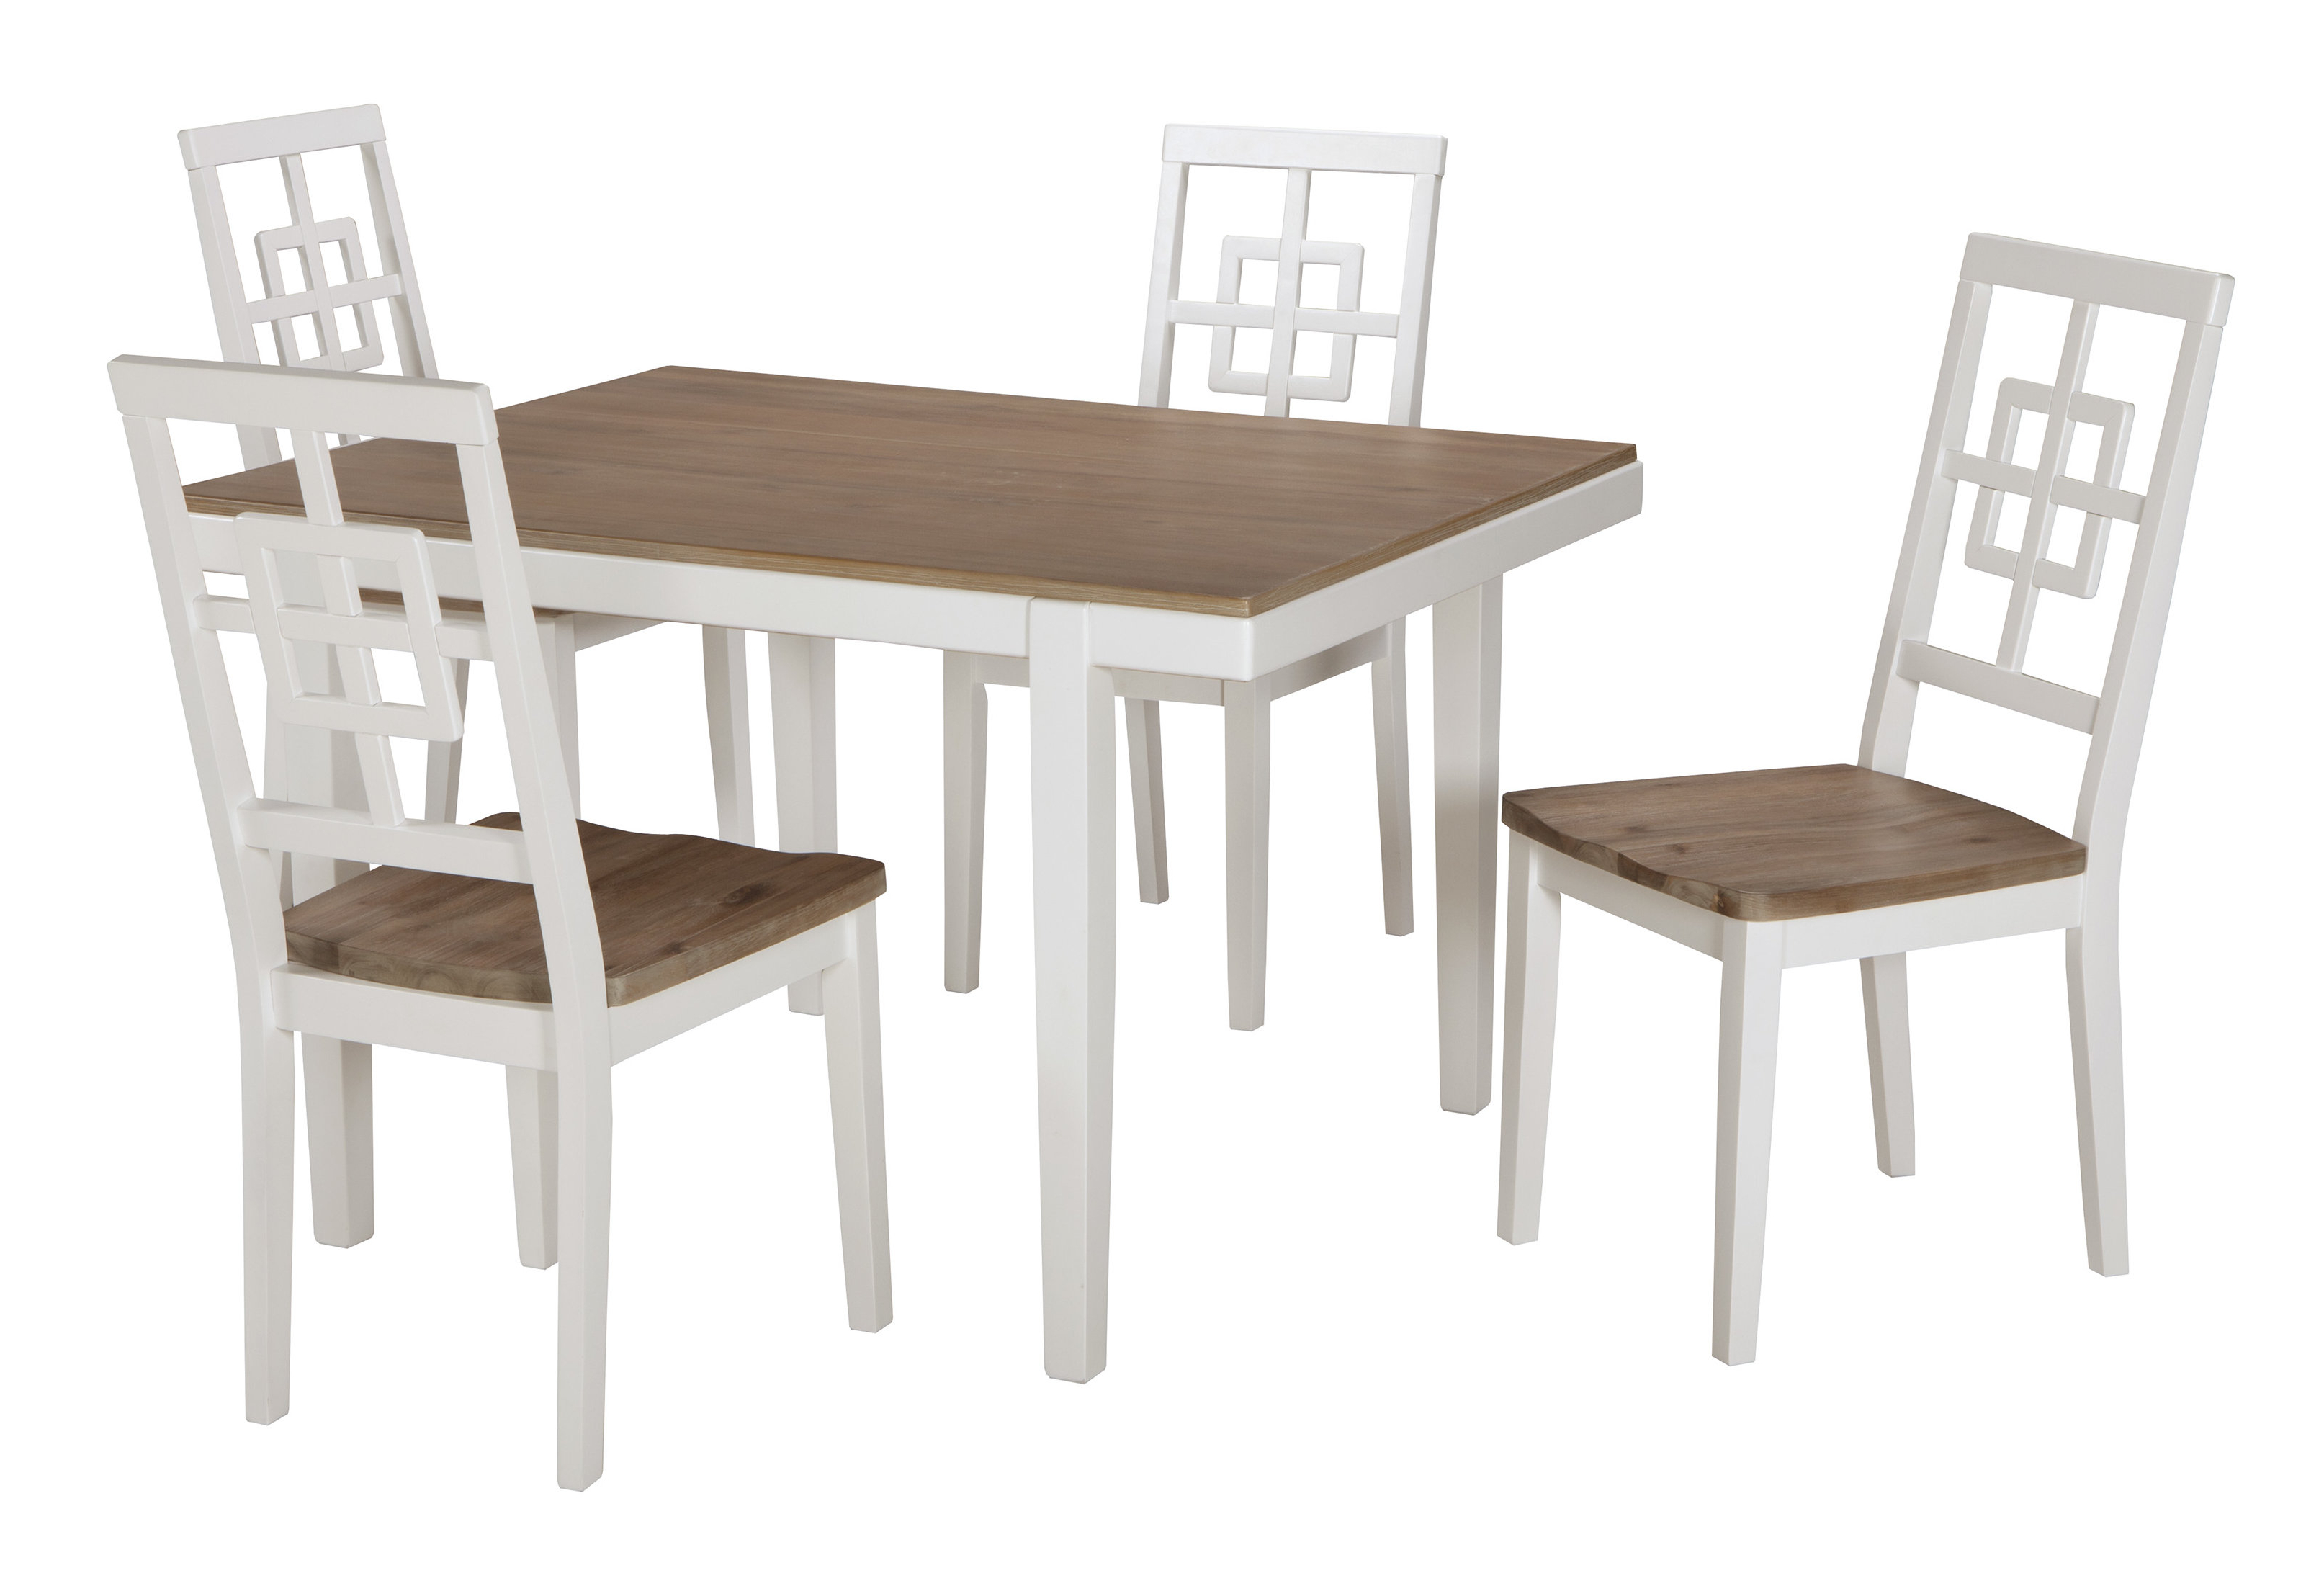 Best And Newest Kieffer 5 Piece Dining Sets Pertaining To Beachcrest Home Nicol 5 Piece Dining Set & Reviews (View 6 of 25)